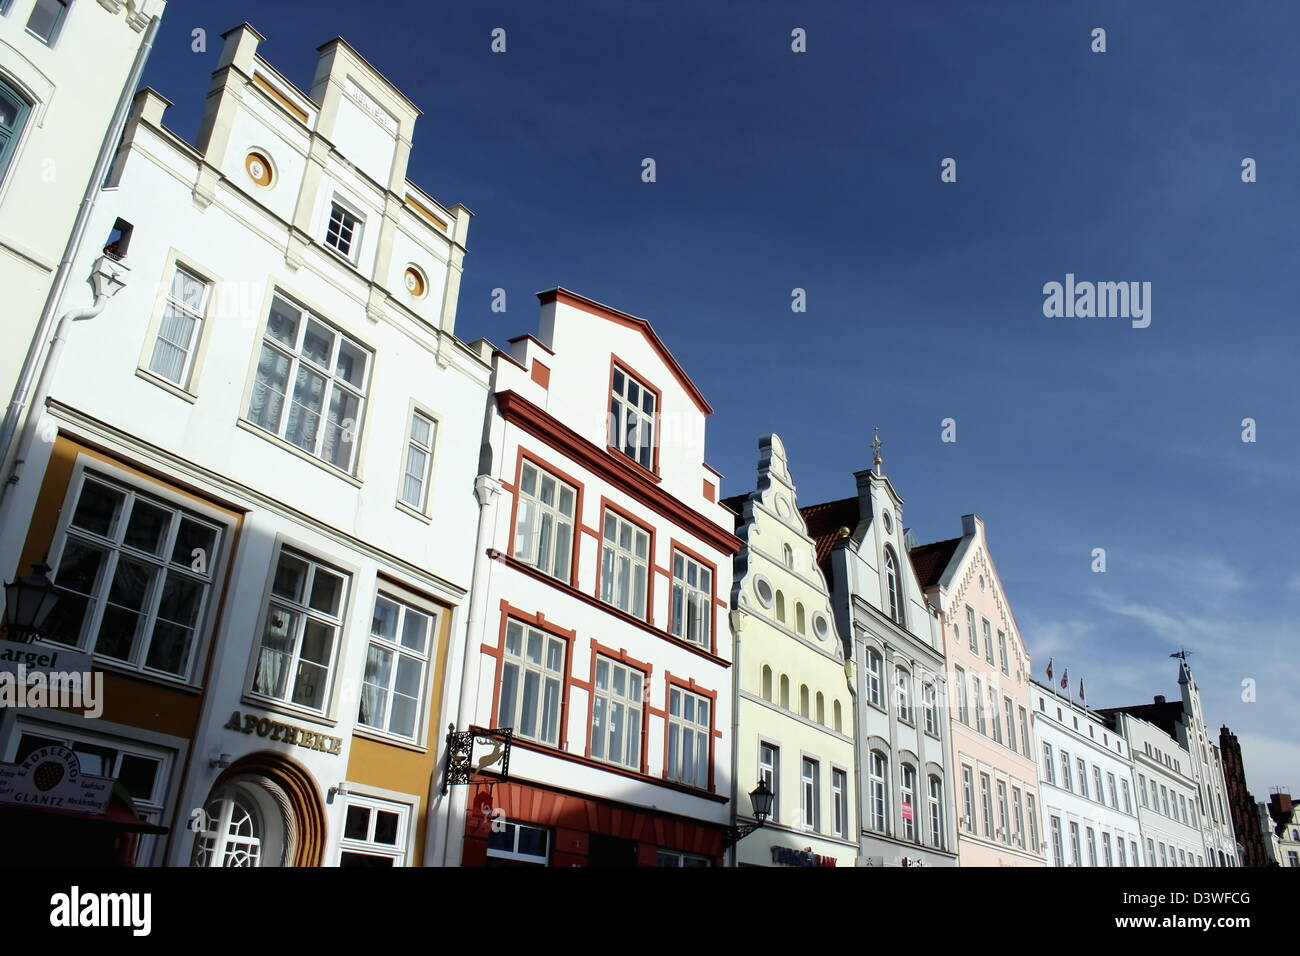 Raw of beautiful old houses on a sunny day, Wismar, Germany - Stock Image